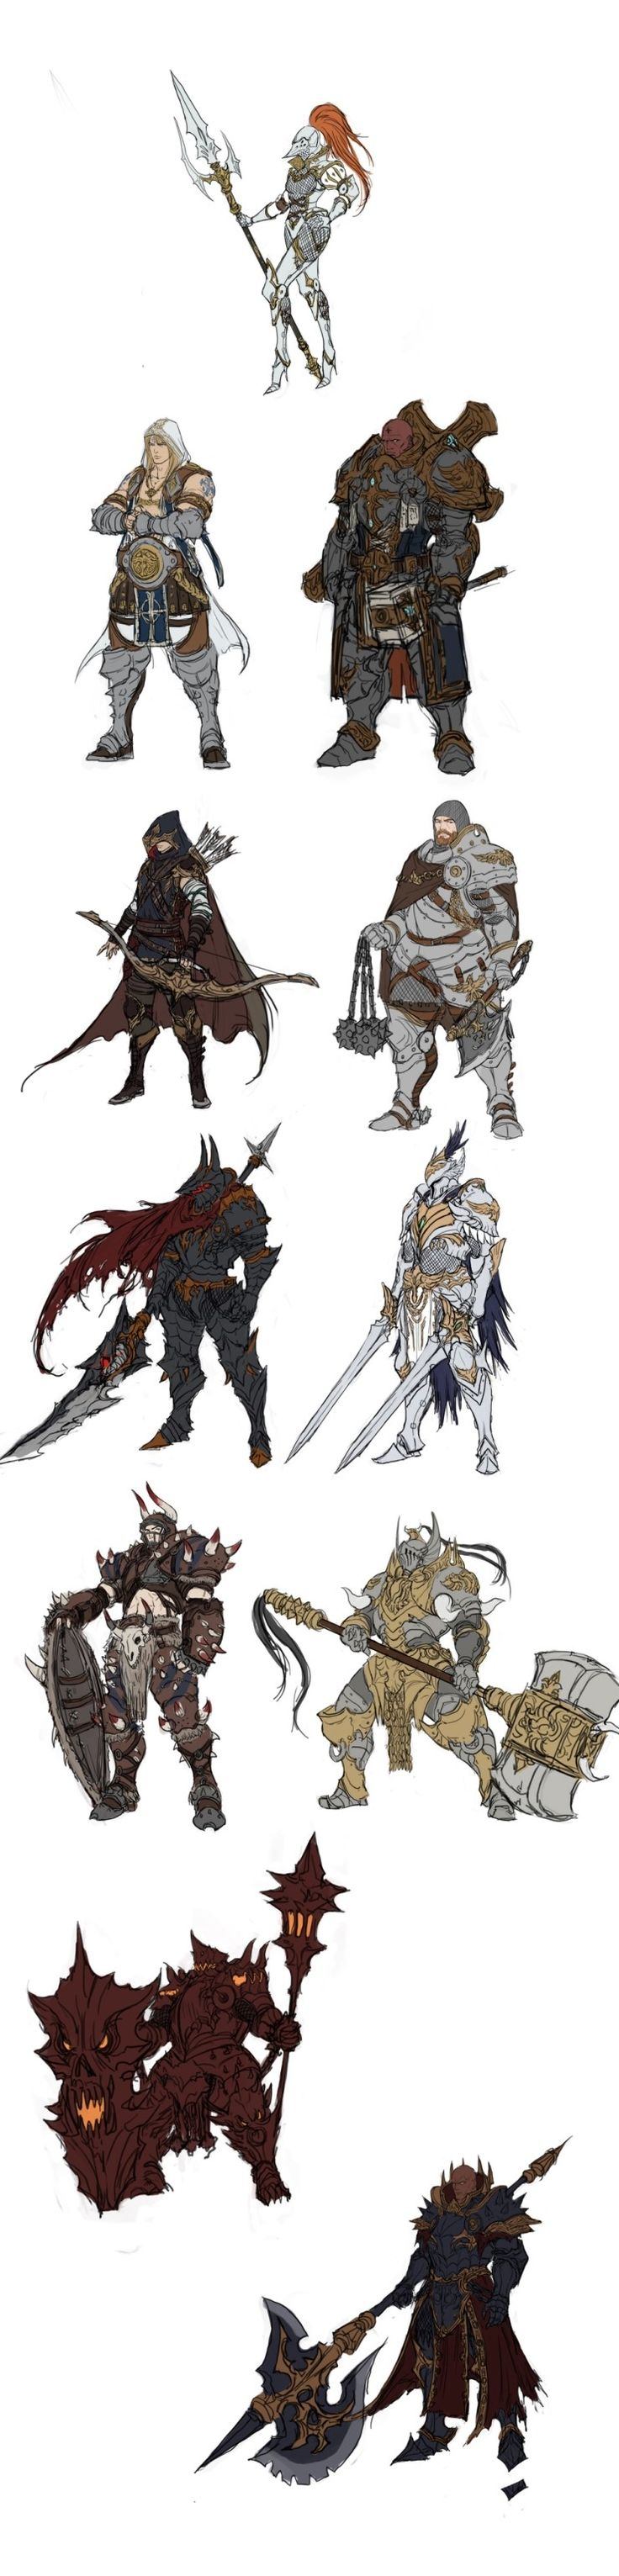 "Fantasy Heroes and Villians from the popular ""Warriors and Demons"" series of novels"